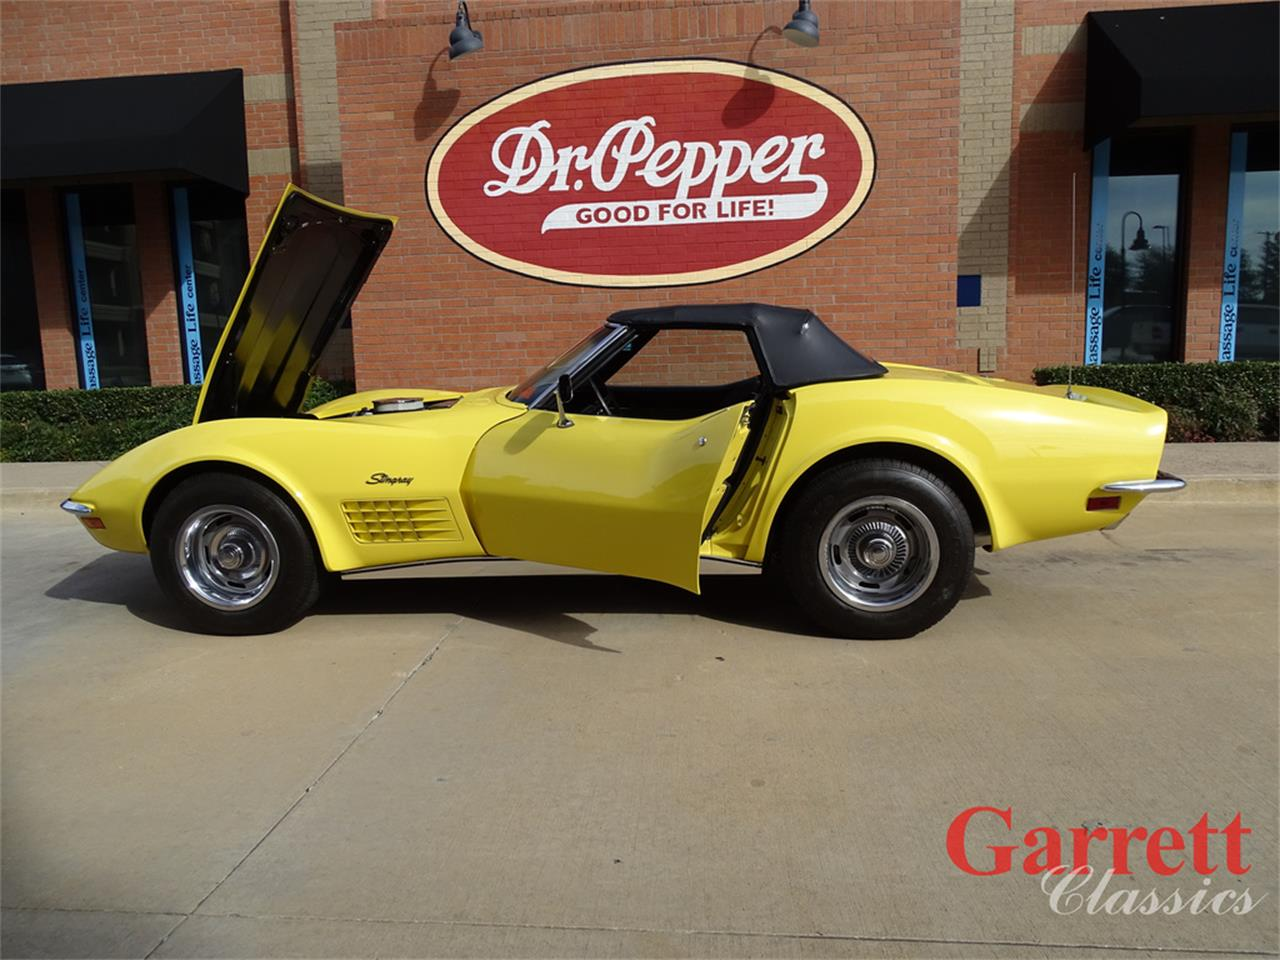 Large Picture of '70 Chevrolet Corvette located in Texas - $58,000.00 Offered by Garrett Classics - PJTL